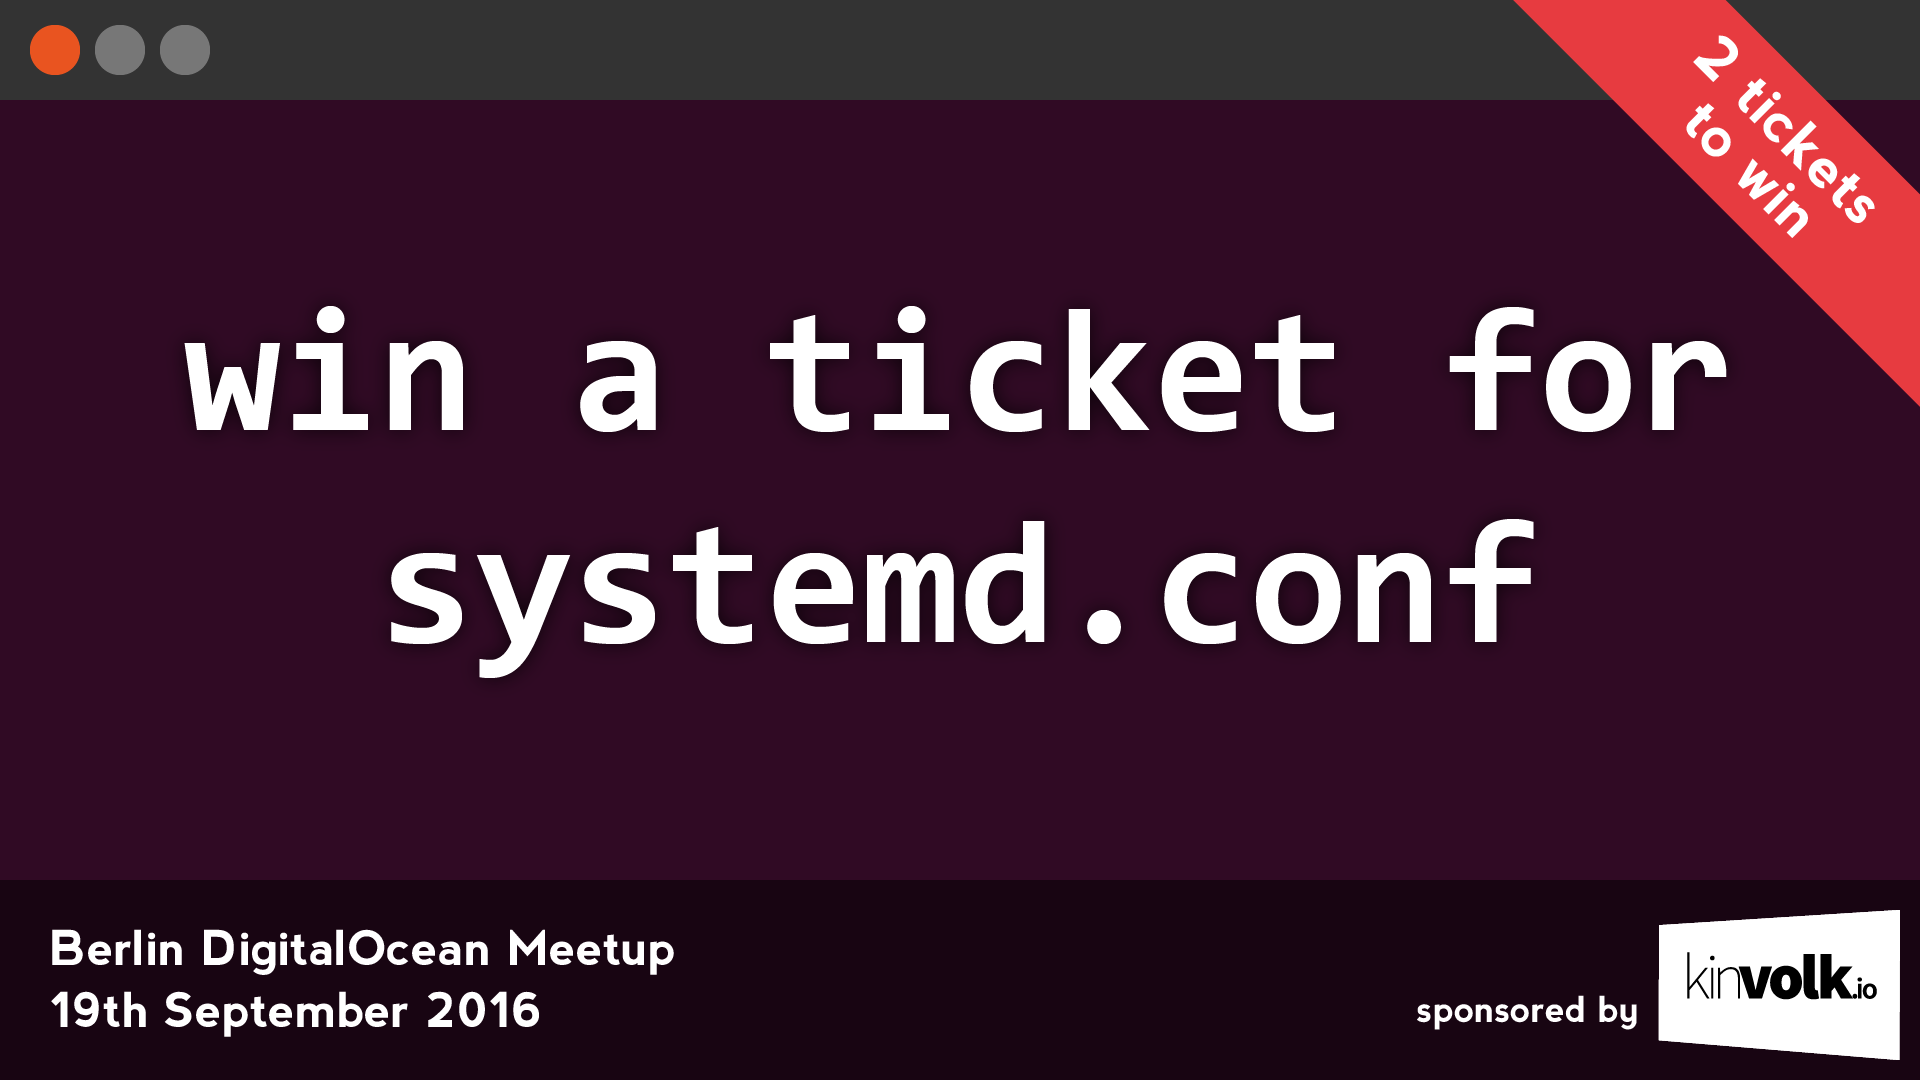 Win a ticket for the systemd.conf on the September DigitalOcean Meetup